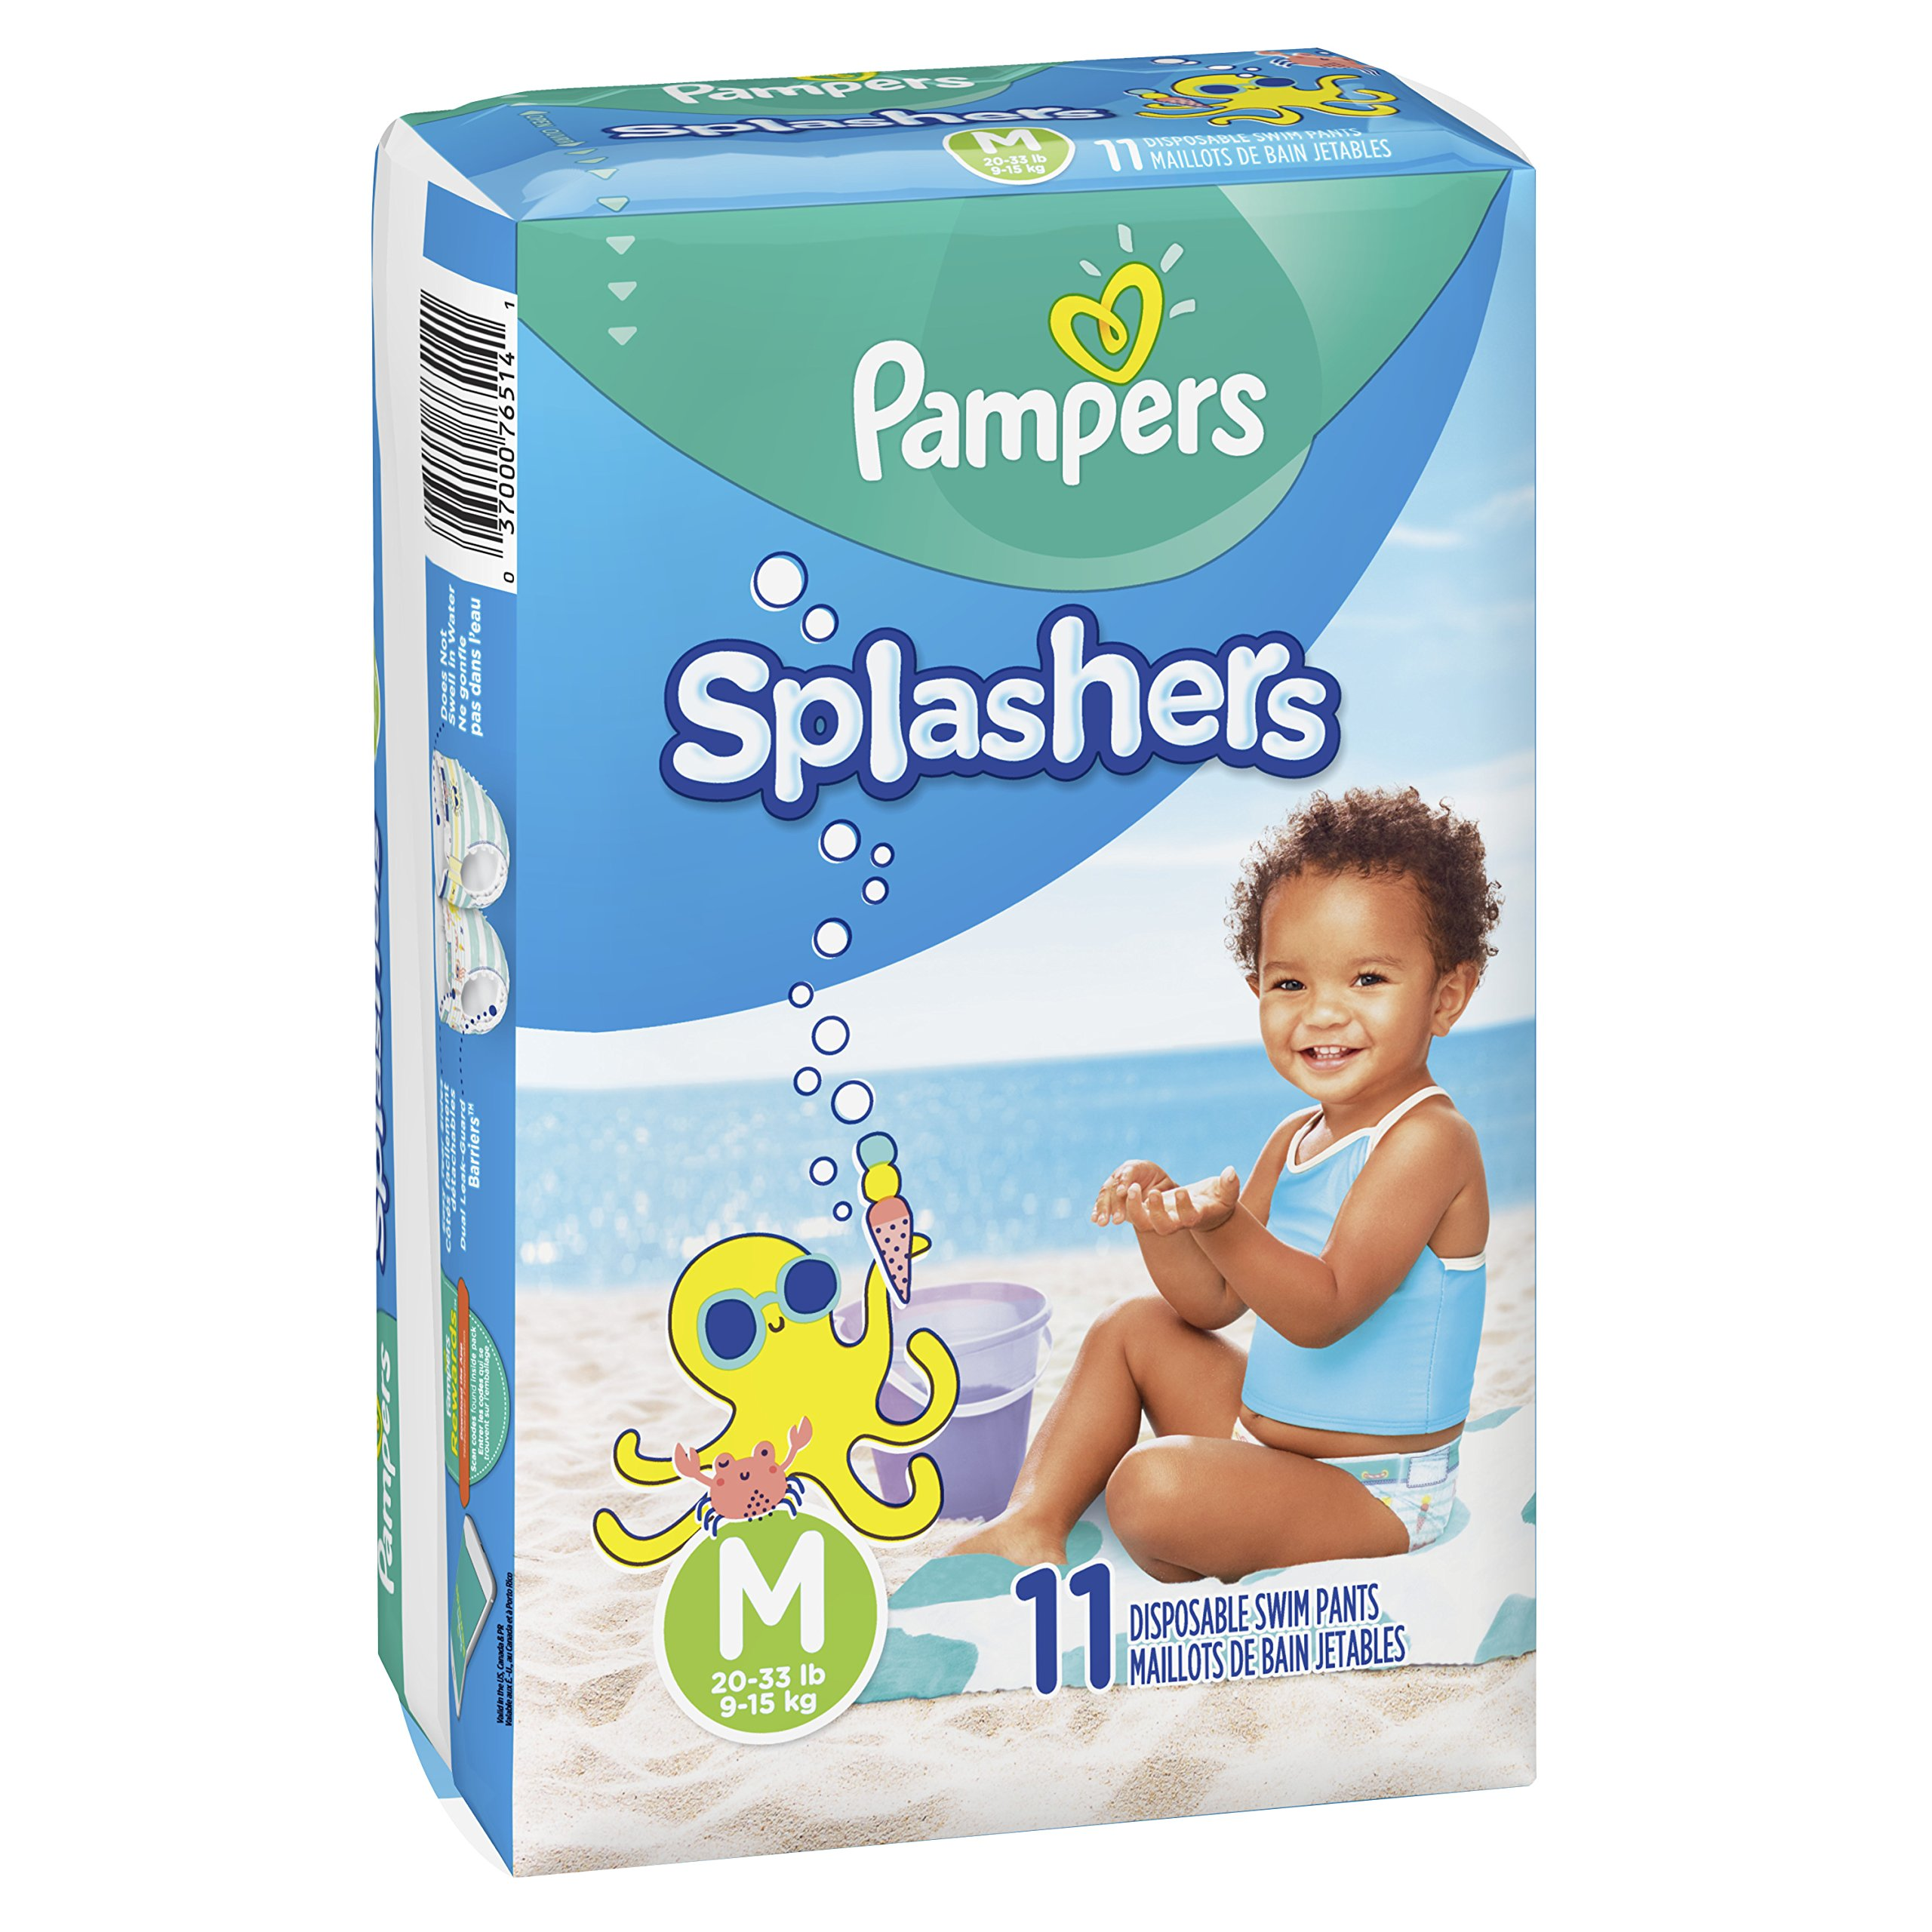 3452d3011 Amazon.com   Pampers Splashers Swim Diapers Disposable Swim Pants ...